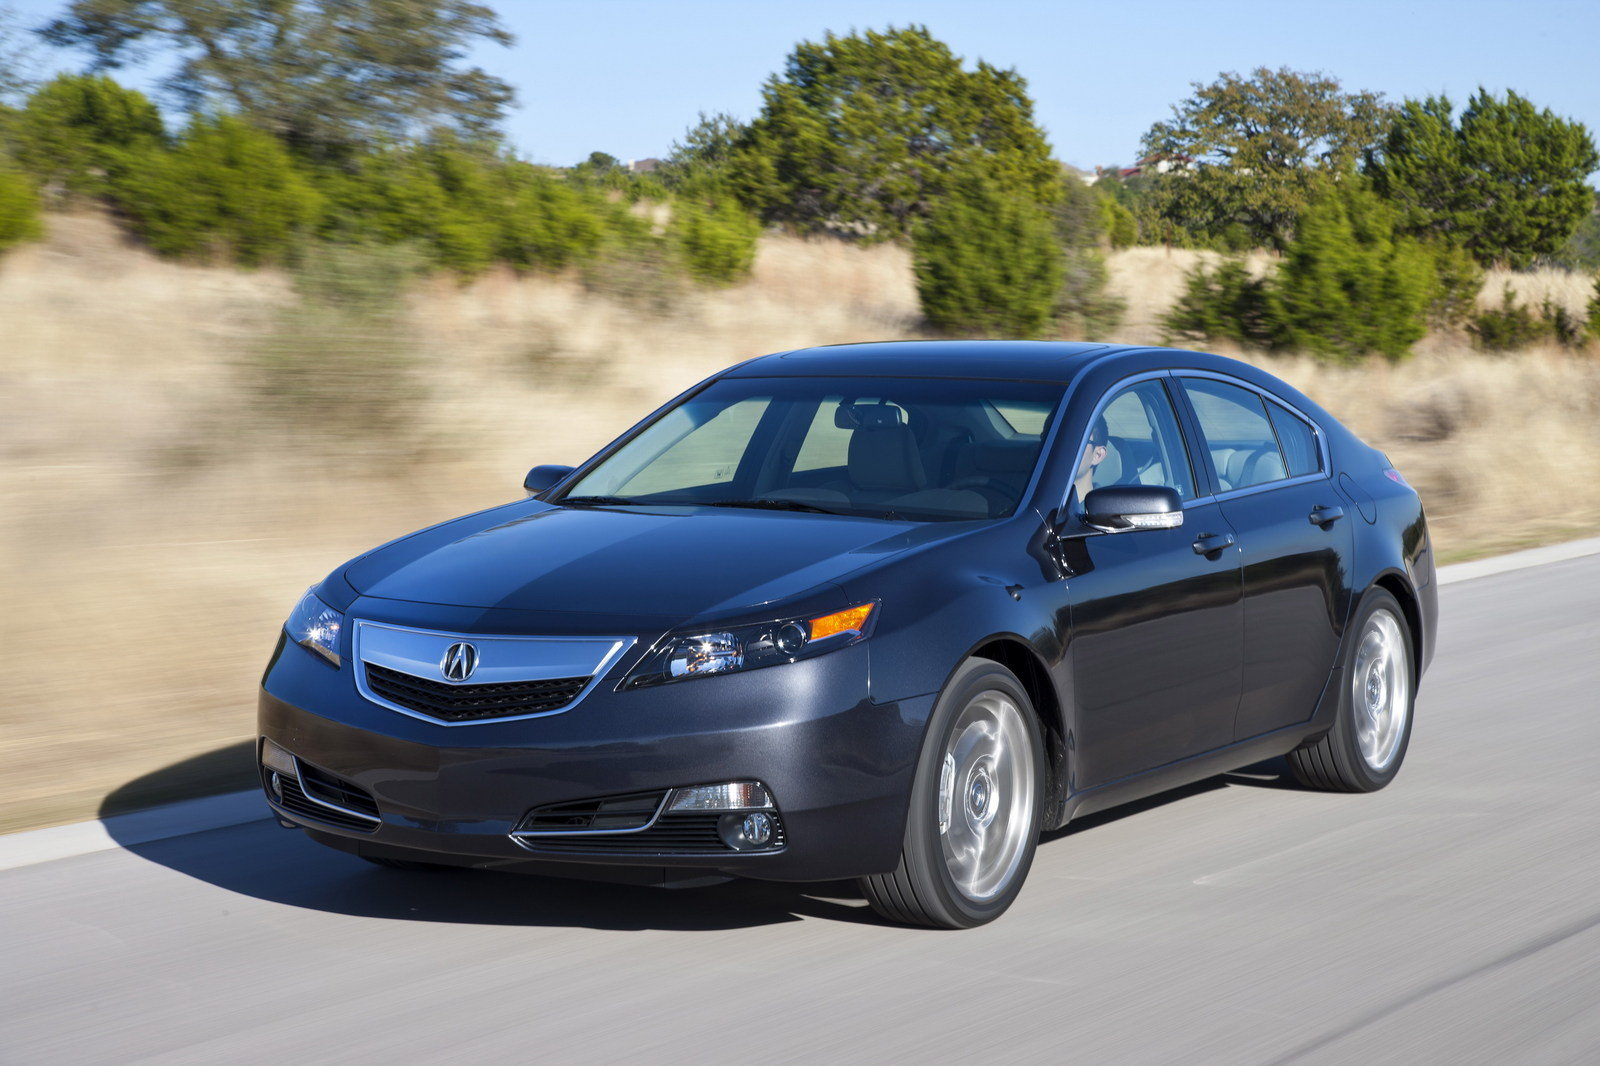 2014 acura tl review top speed. Black Bedroom Furniture Sets. Home Design Ideas